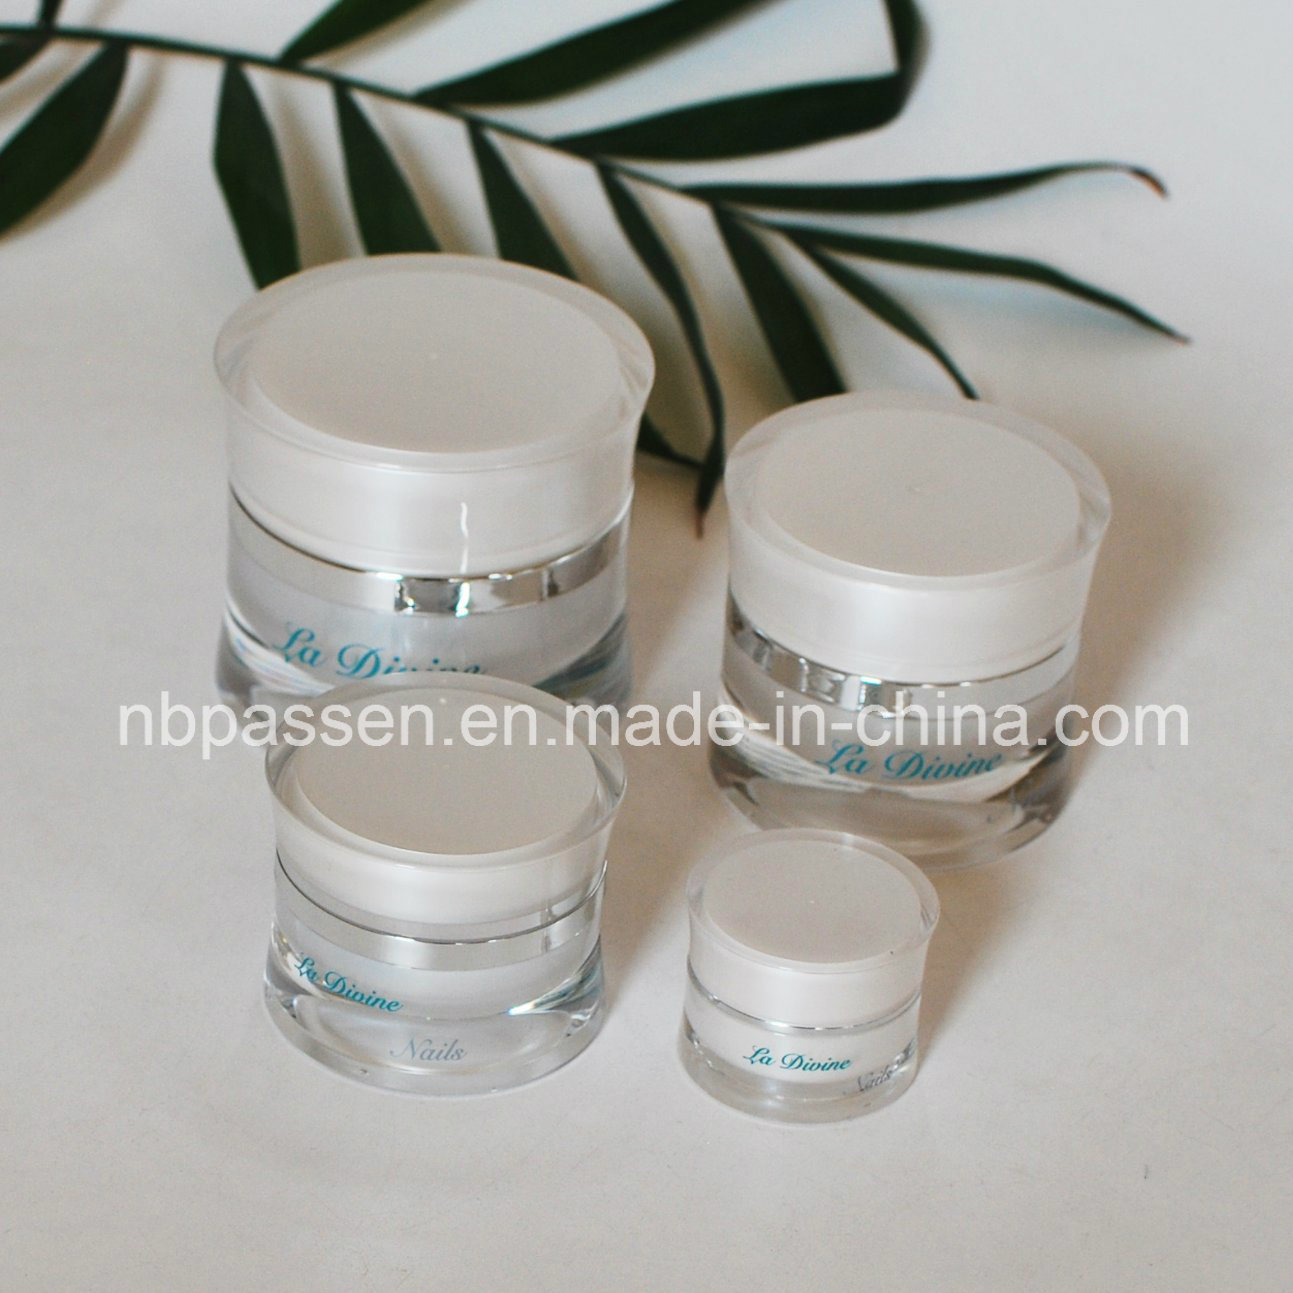 New 5/15/30/50g Pearl White Acrylic Waist Cream Jar for Cosmetics (PPC-NEW-113)